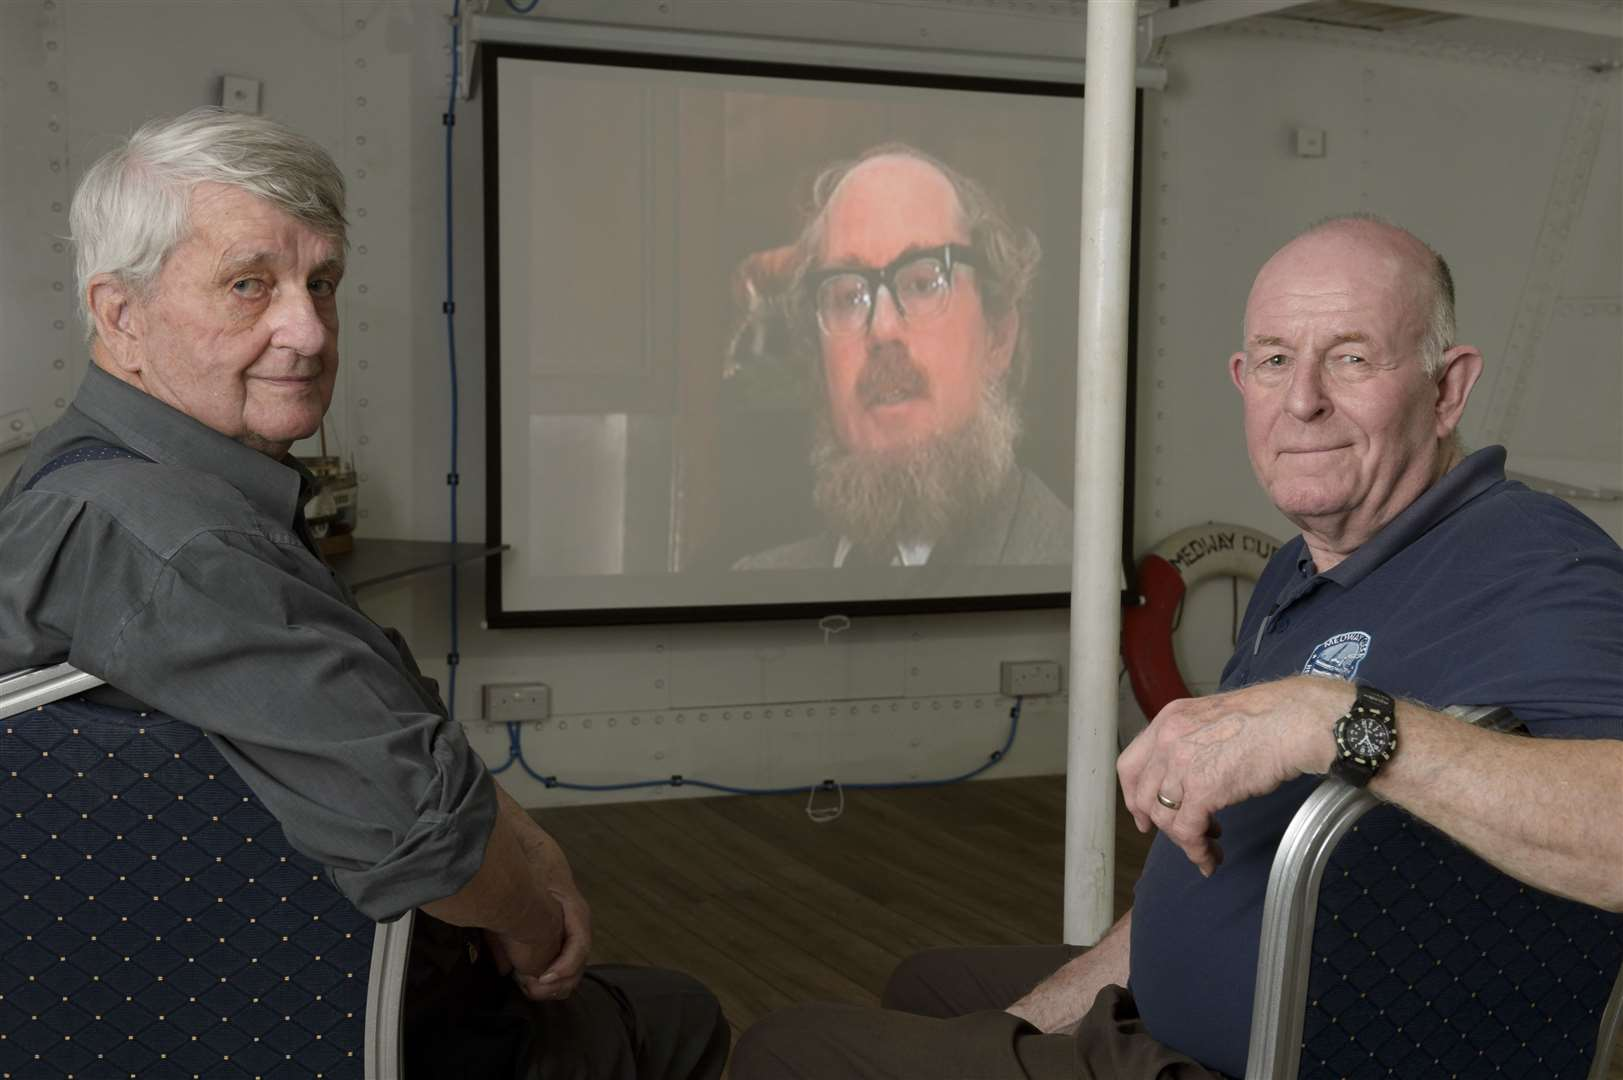 Publicity officer Brian Goodhew, left, and volunteer Mark Bathurst with a showing of old Medway Queen news footage. Regular open day for the Medway Queen paddle steamer, at Gillingham Pier, Gillingham. It's also the Dunkirk evacuation anniversary and as a veteran ship the Dunkirk pennant is being flown.Picture: Andy Payton (2333248)